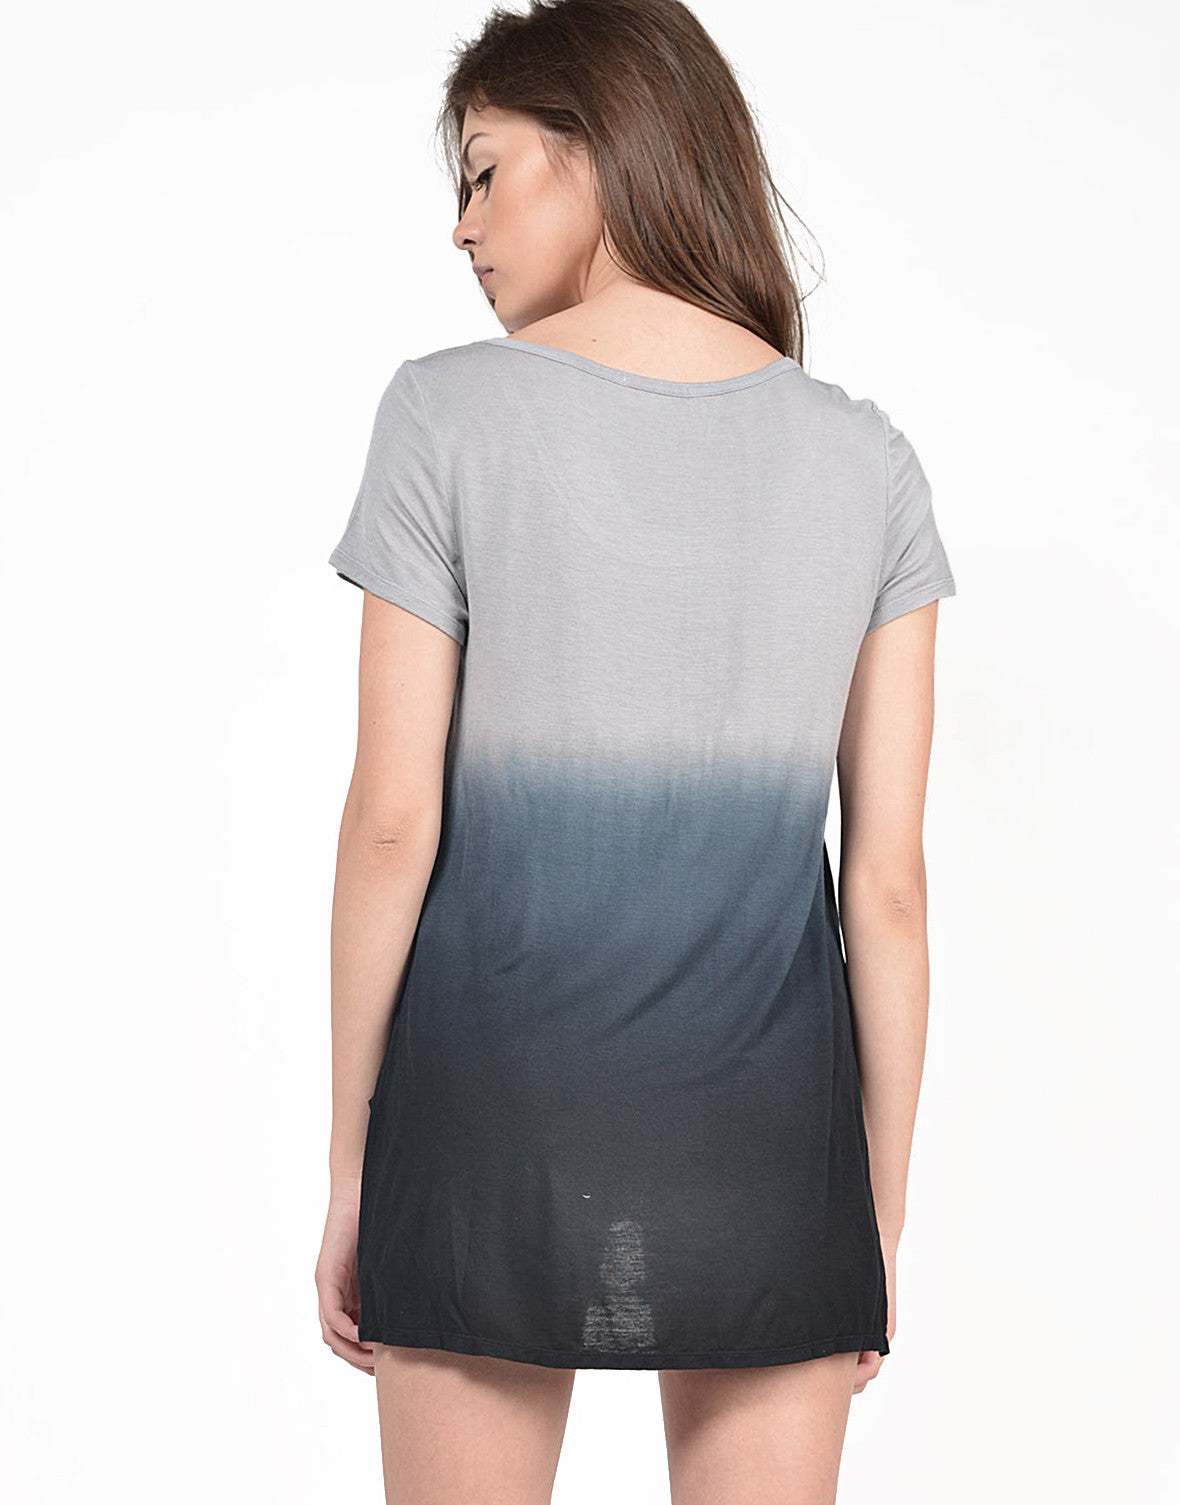 Back View of Dip Dye Hi-Low Tee